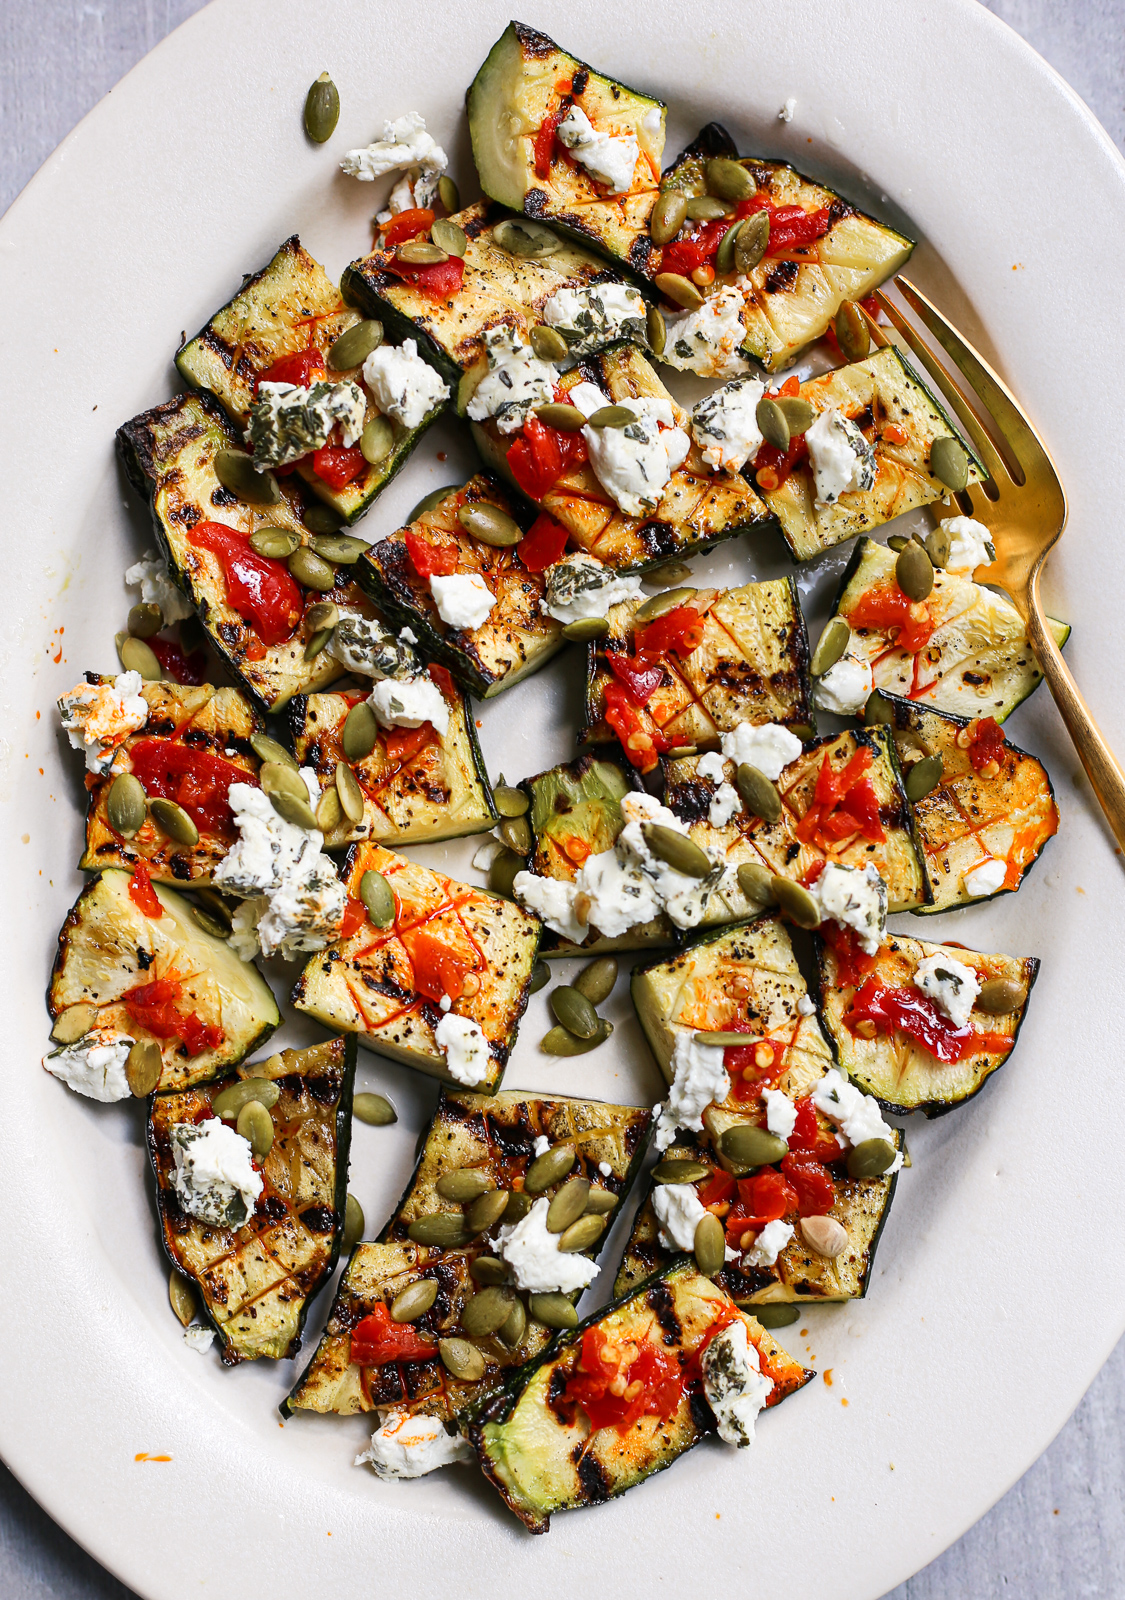 Grilled Zucchini with Calabrian Chiles, Goat Cheese, and Pepitas